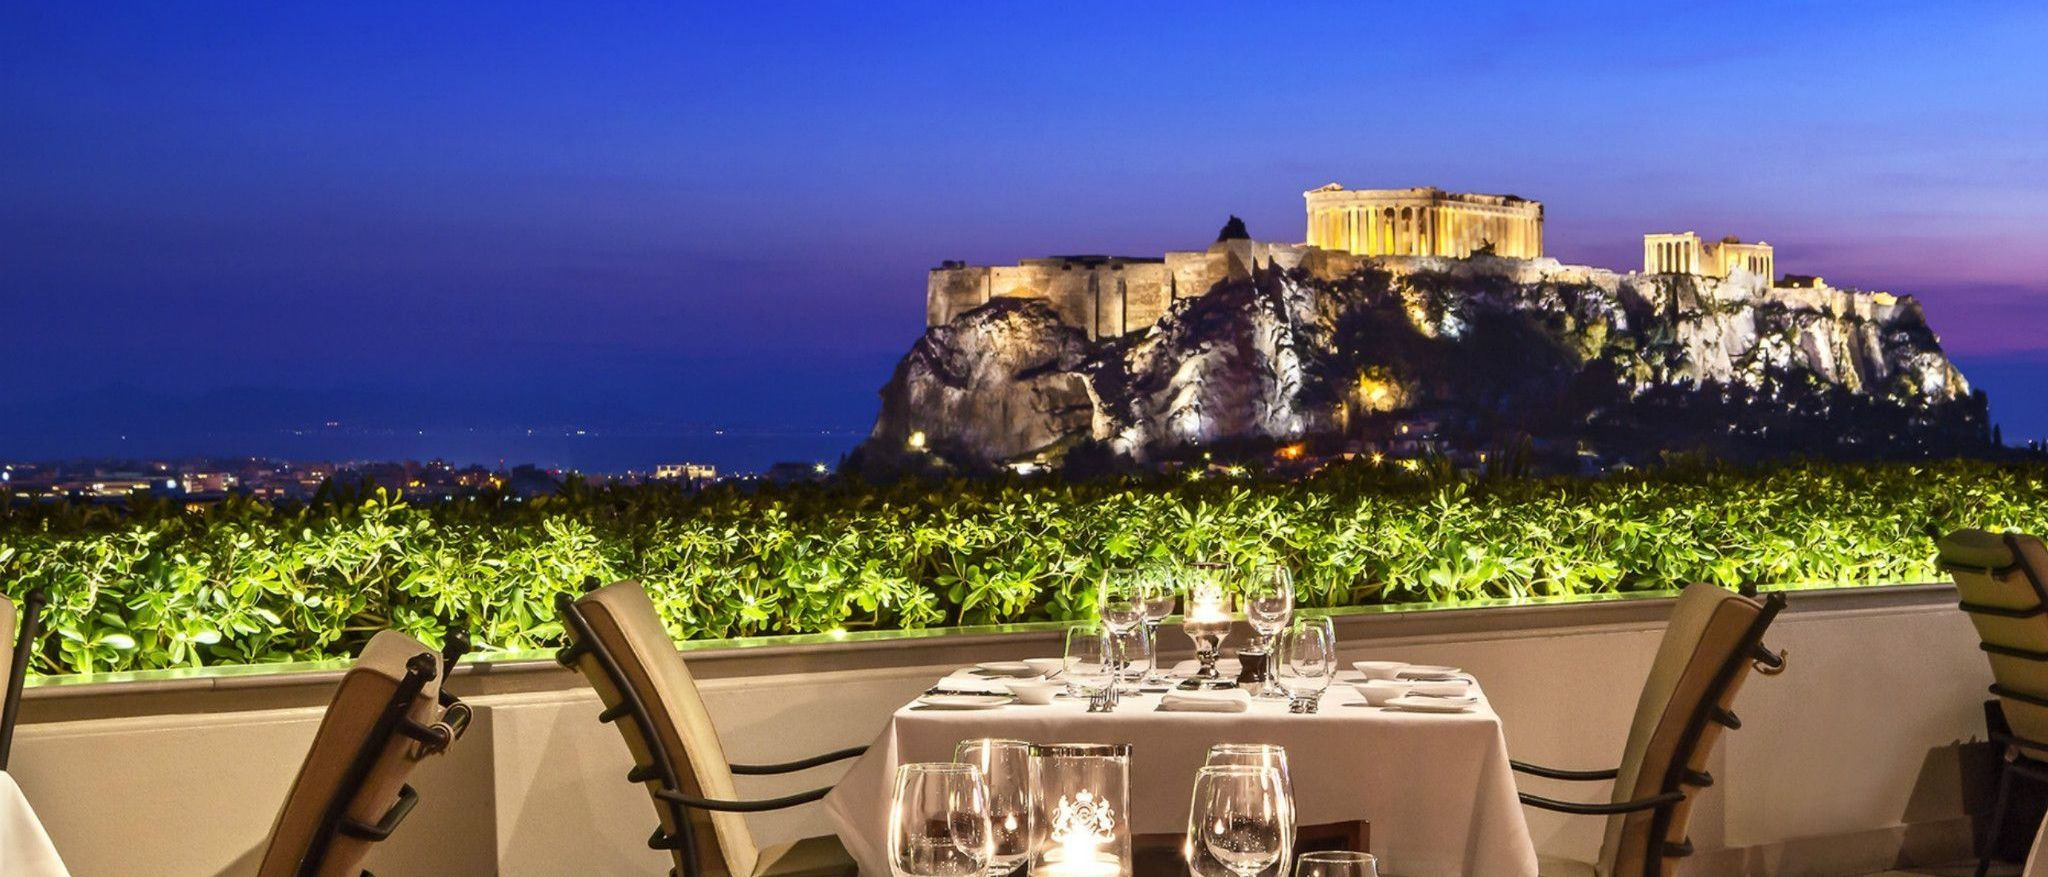 "=""GB-Roof-Garden-Restaurant-Bar-at-the-Hotel-Grande-Bretagne-Athens-Romantic-Dinner""/"